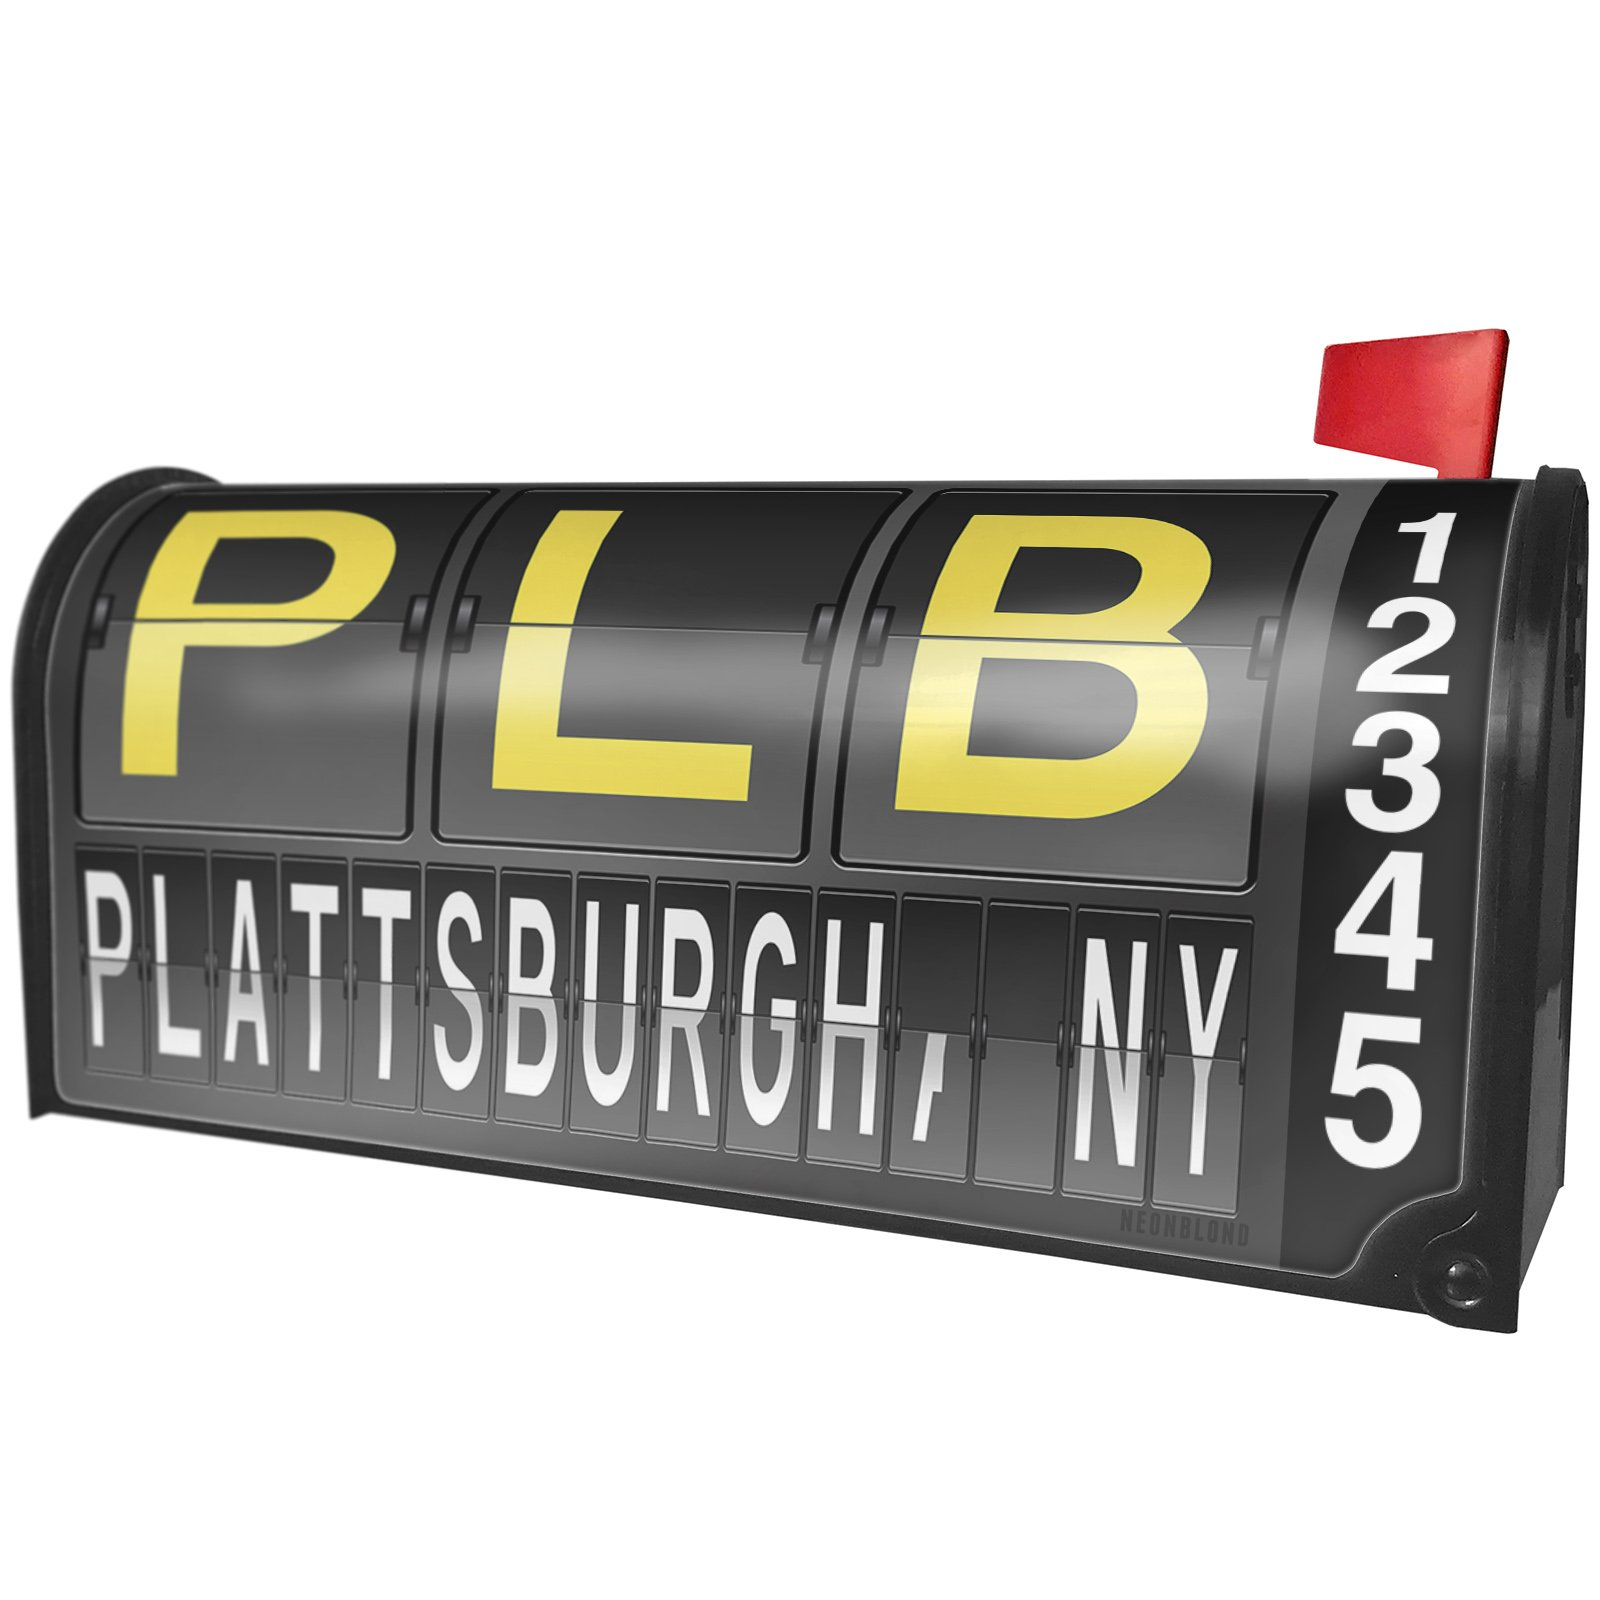 NEONBLOND PLB Airport Code for Plattsburgh, NY Magnetic Mailbox Cover Custom Numbers